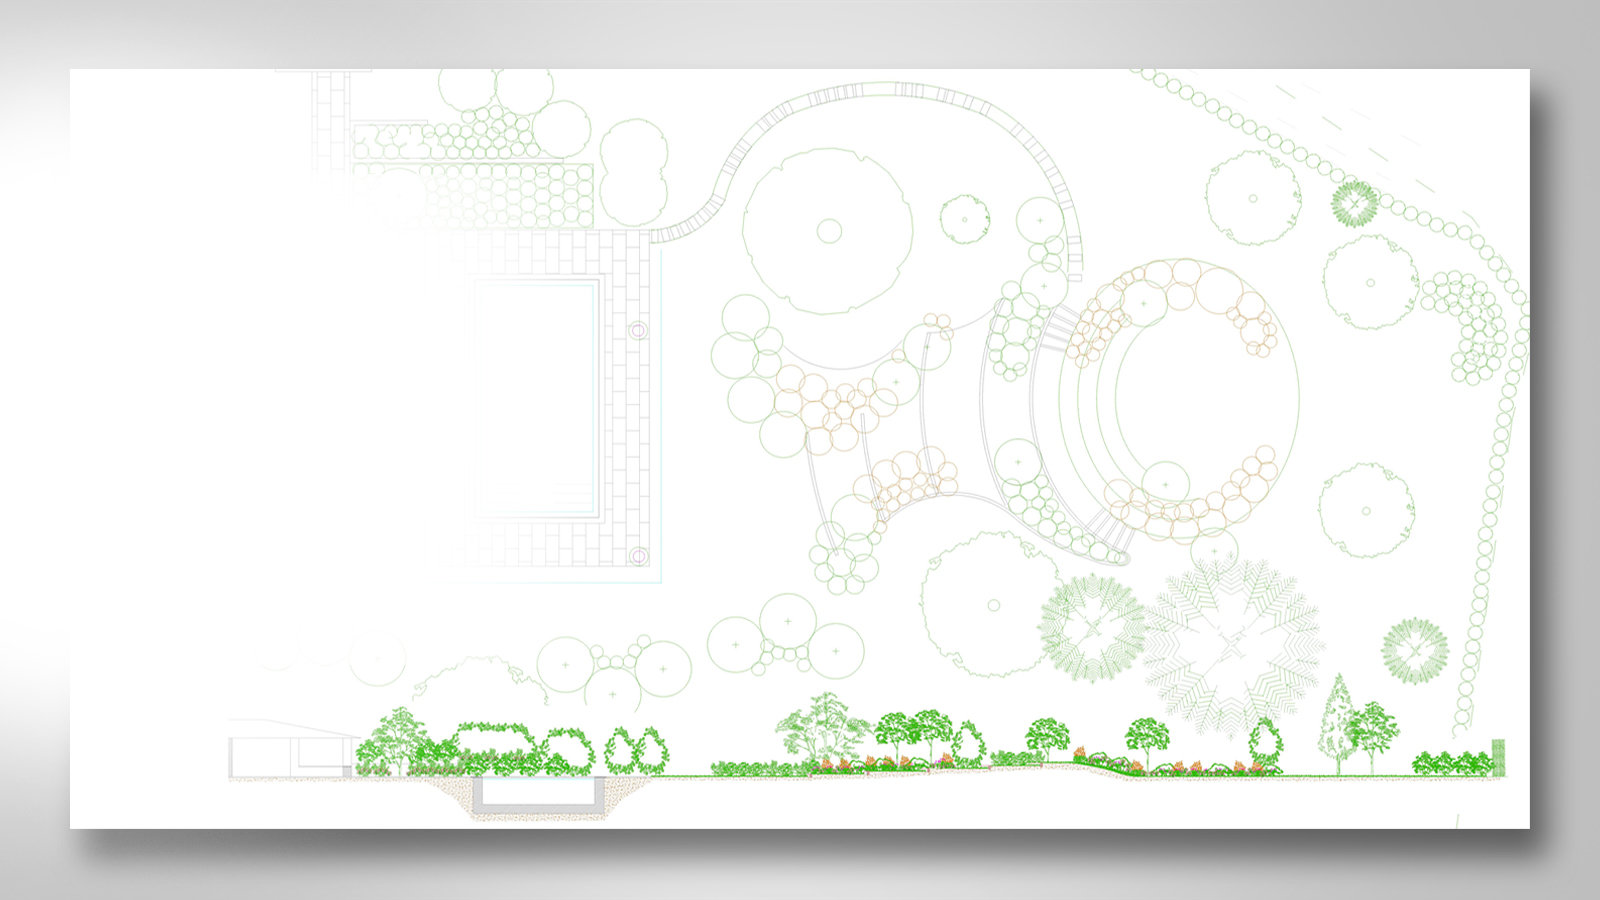 Beeches Transform - Landscape CAD drawings Leeds